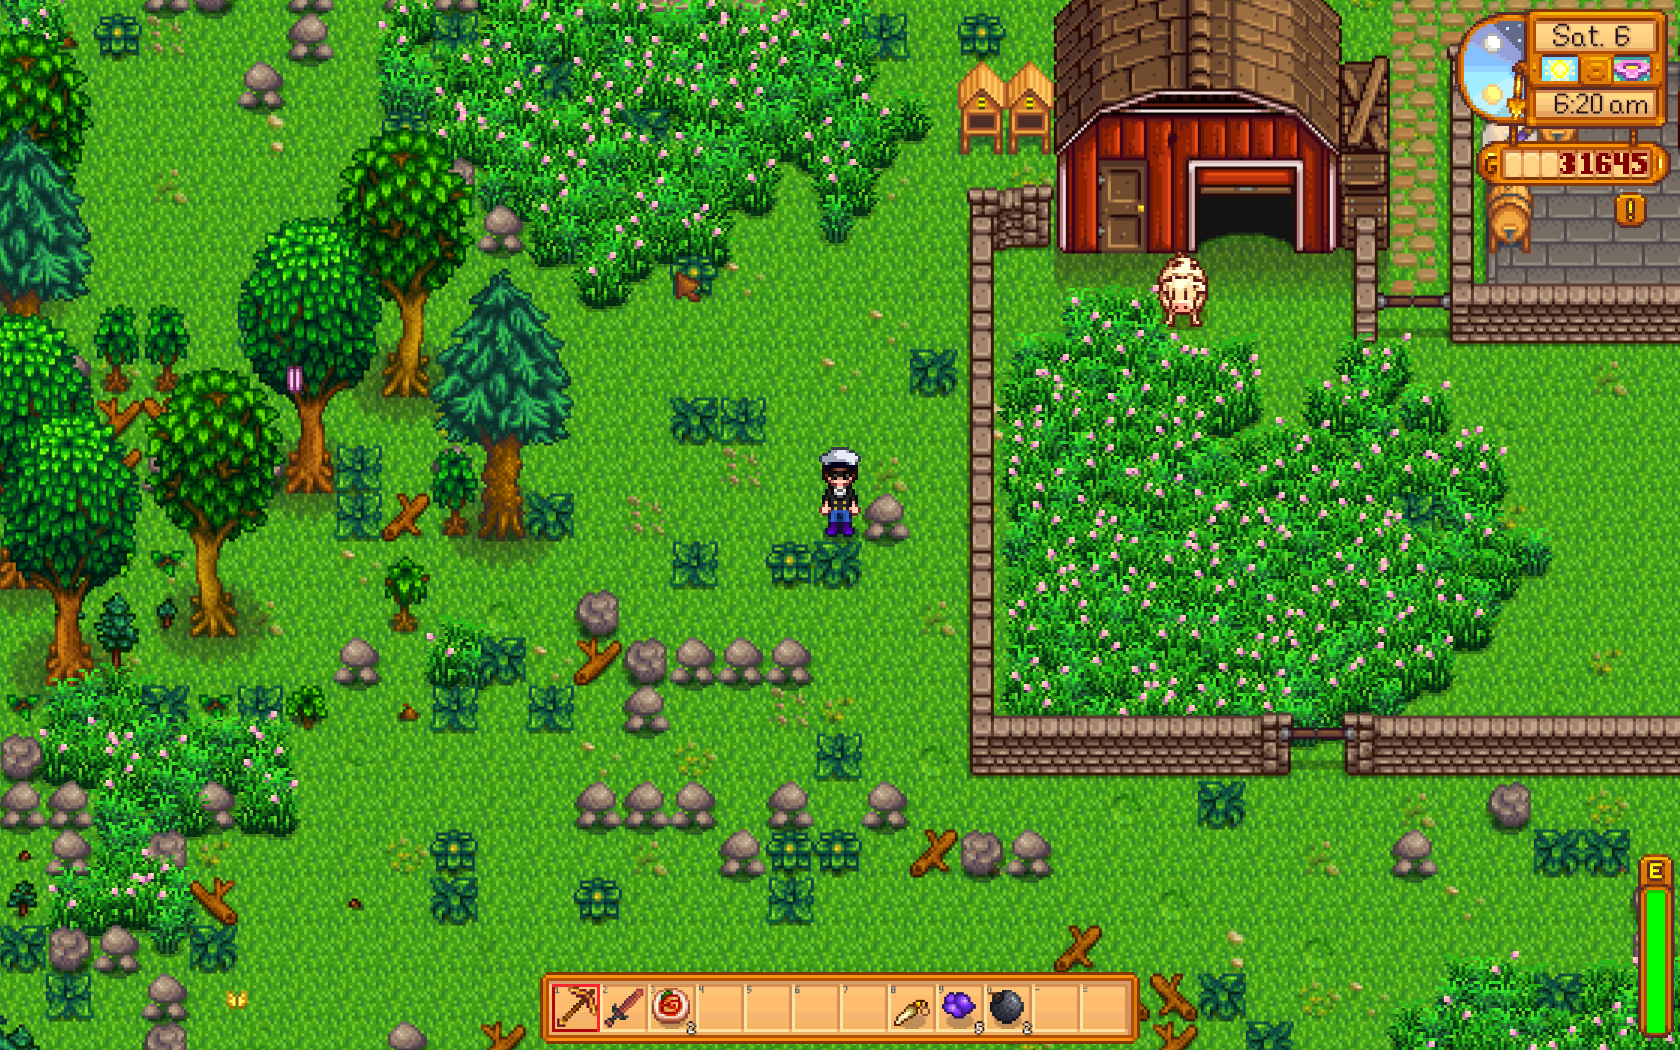 Yellow Dirt Removal At Stardew Valley Nexus Mods And